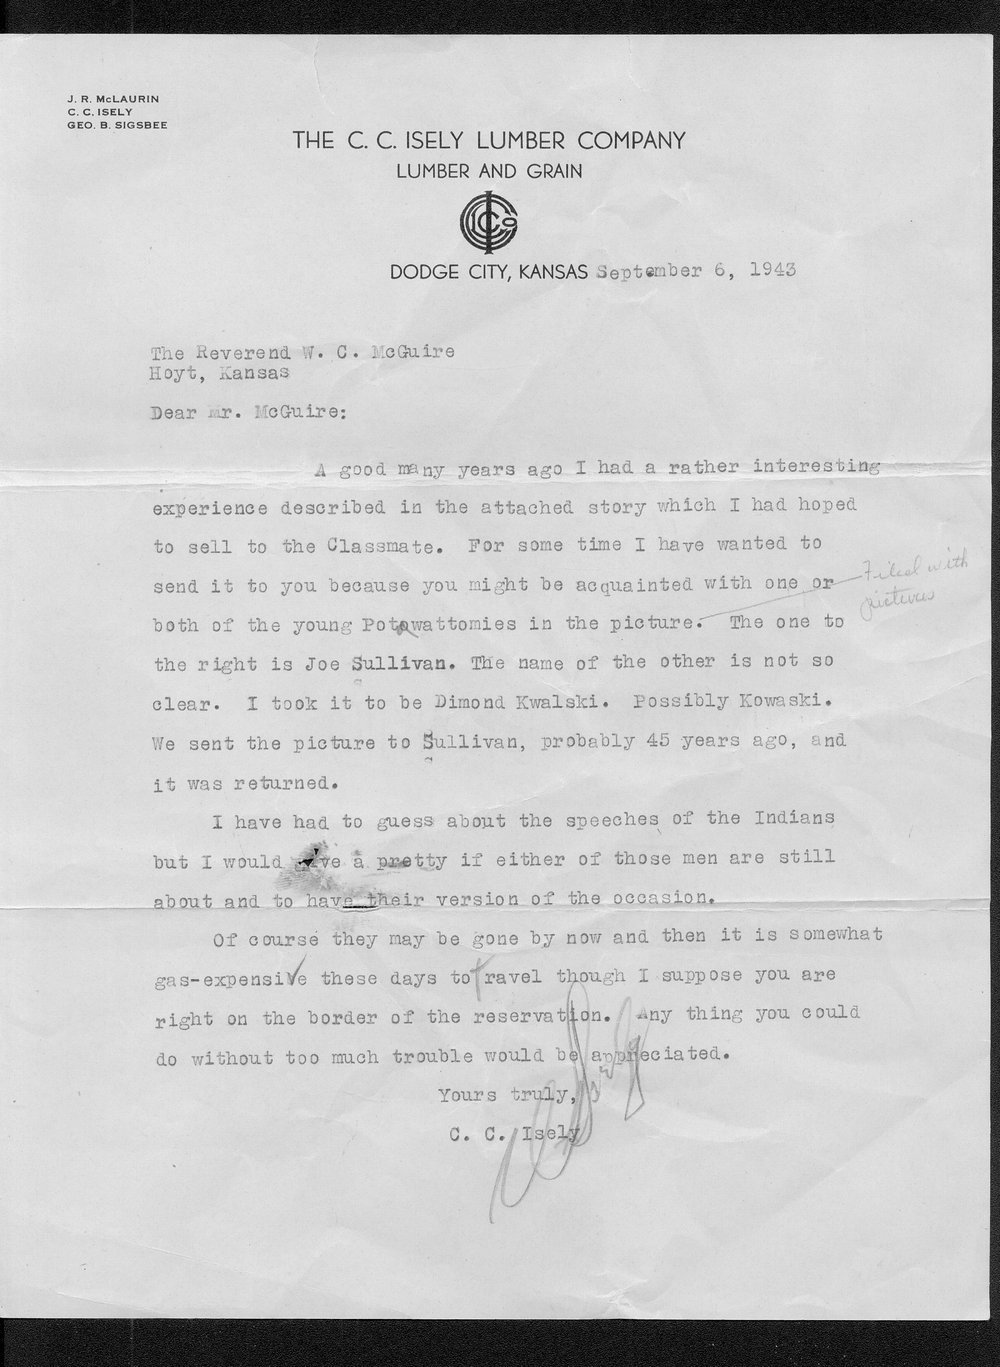 C.C. Isley to Reverend W.C. McGuire, and accompanying manuscript - 1